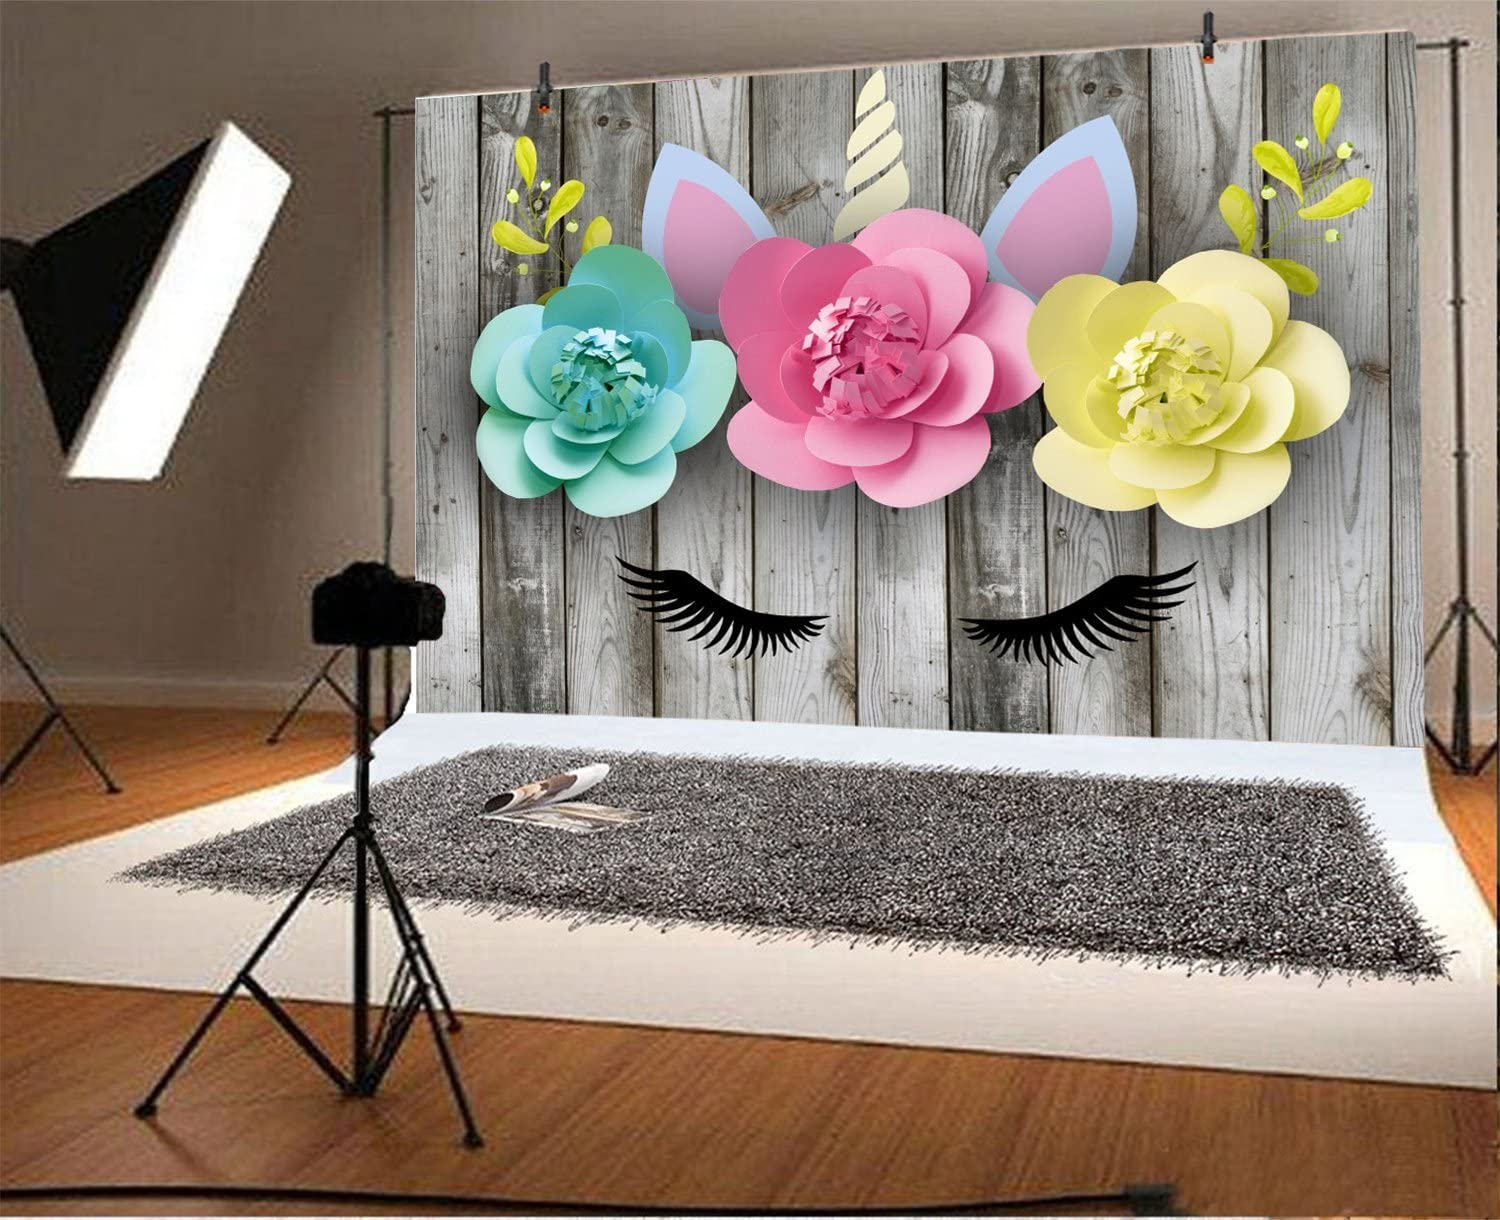 LFEEY 5x3ft Unicorn Birthday Decorations for Girls Photography Backdrops Wood Board Flower Backdrop Baby Shower Photoshoot Background Unicorn Head Backgrounds for Photography Vinyl Photo Studio Props